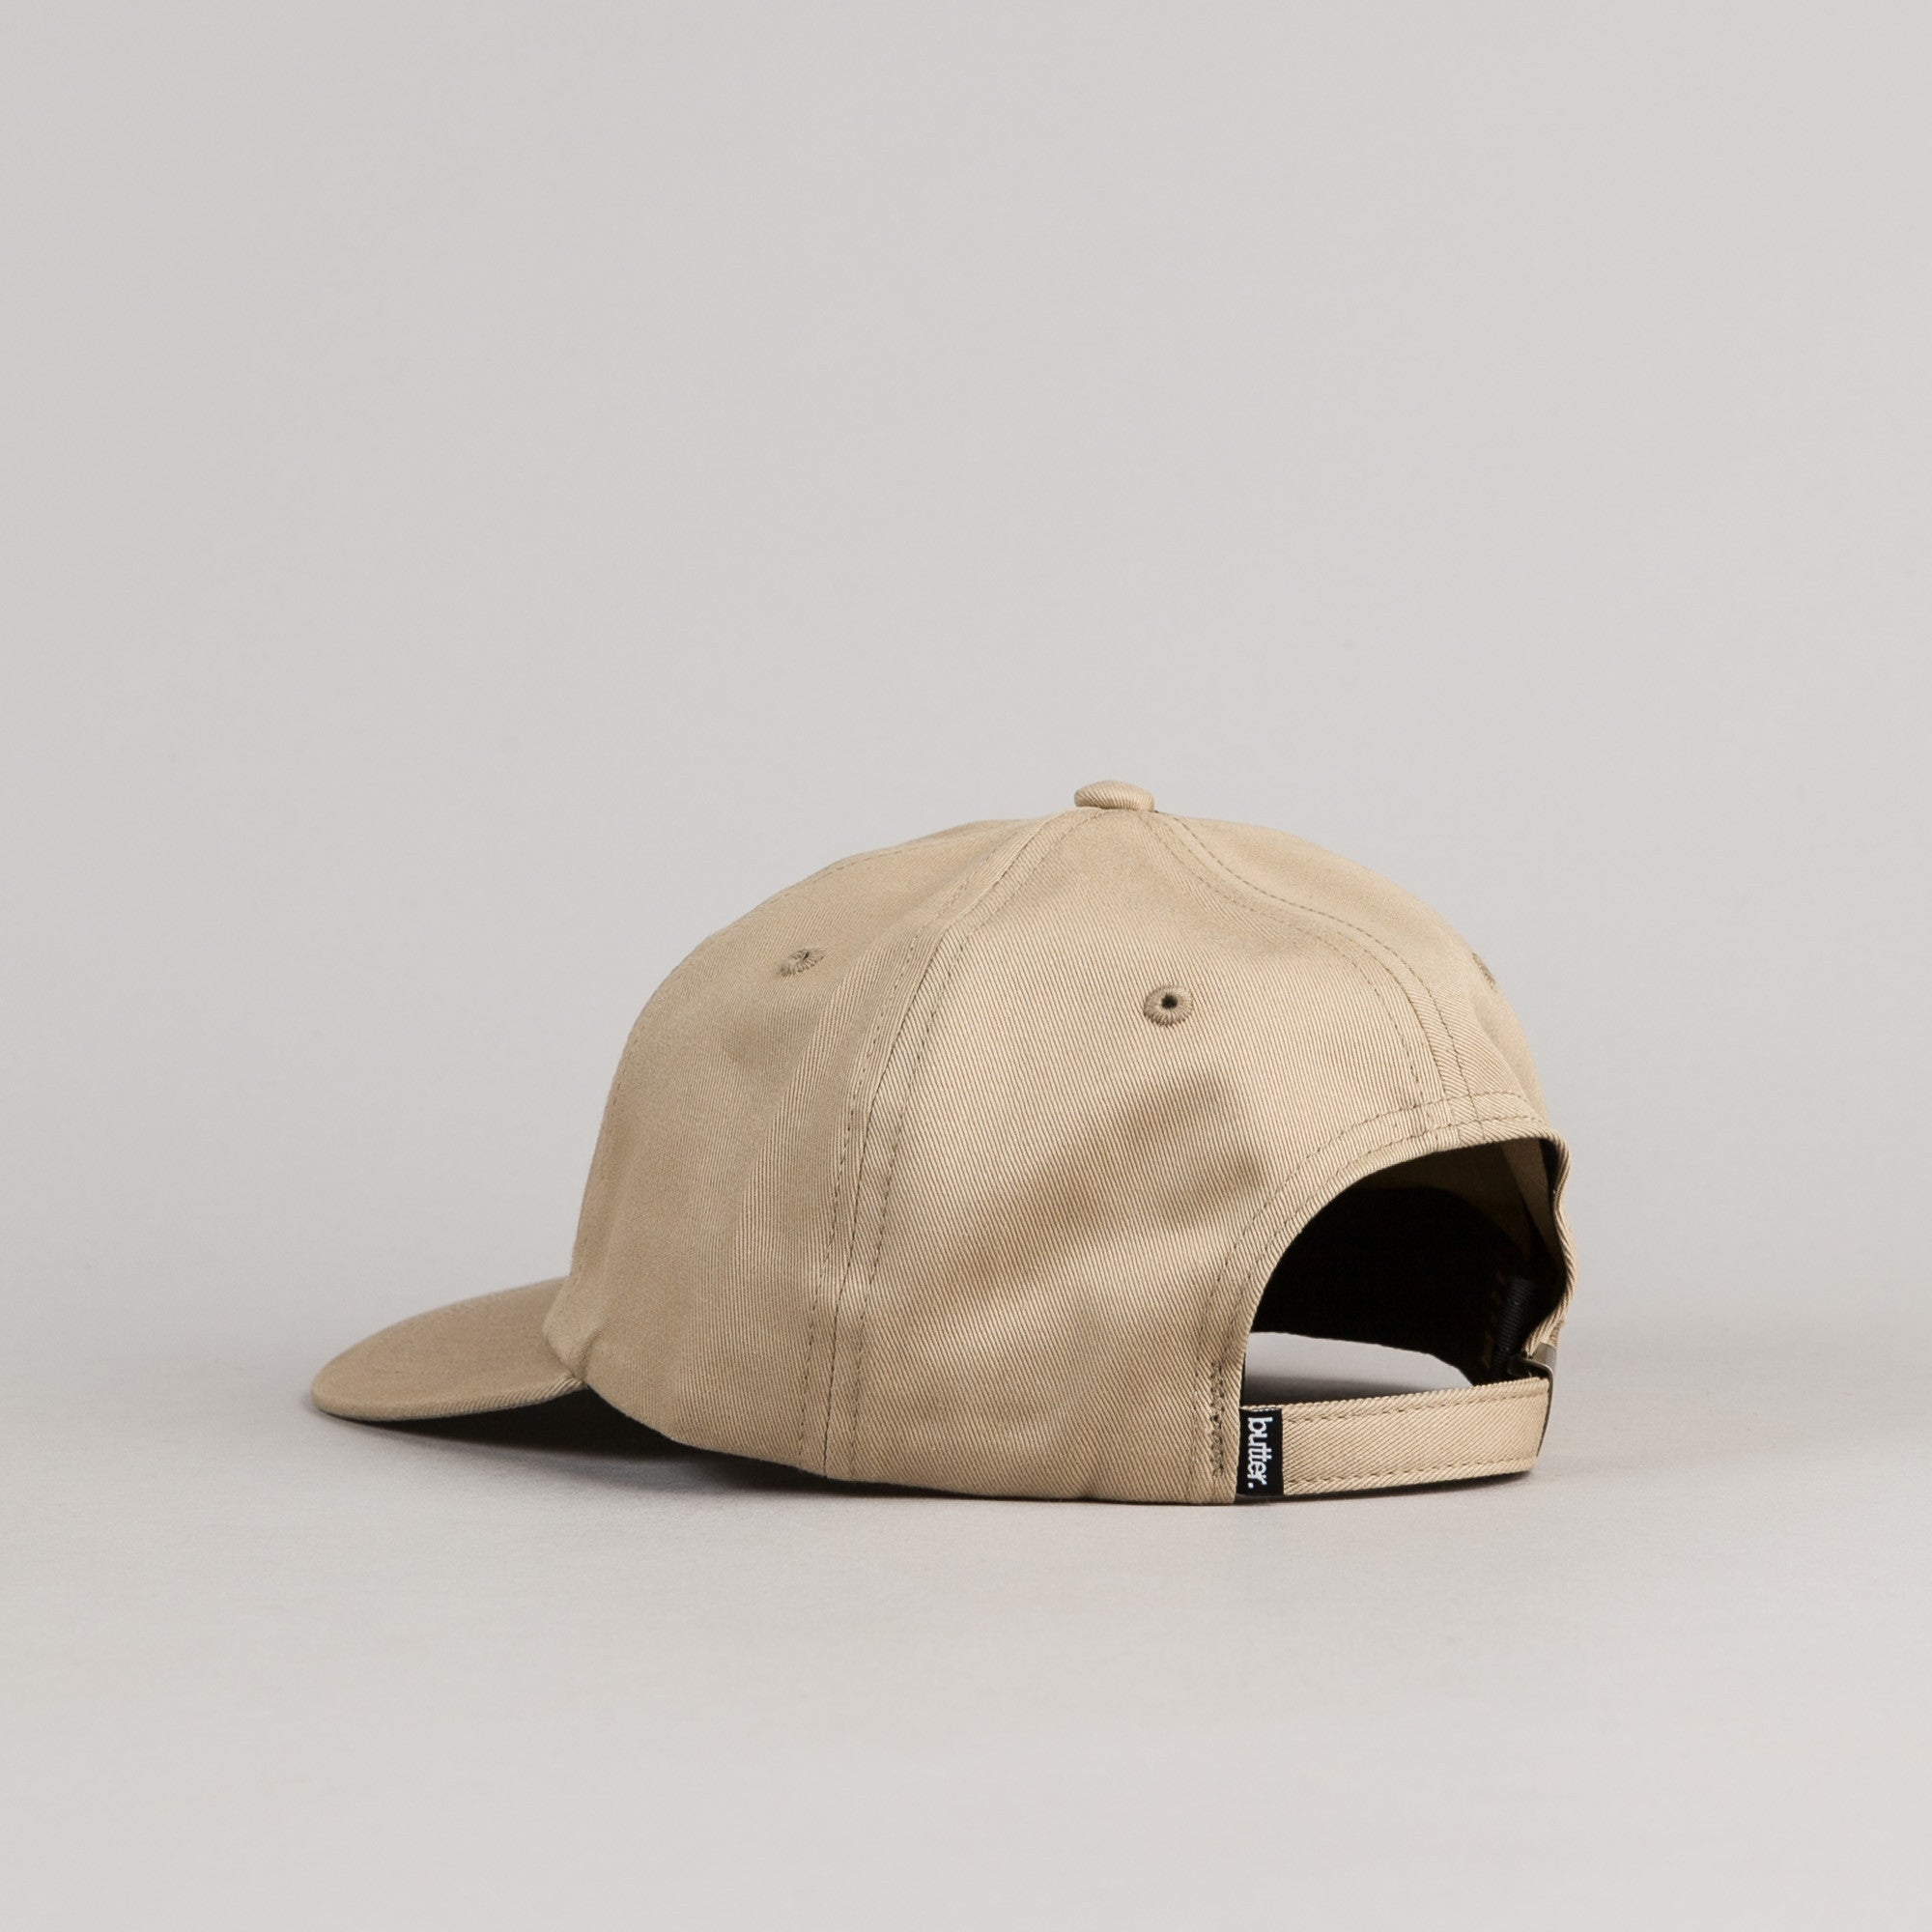 Butter Goods Golf 6 Panel Cap - Khaki